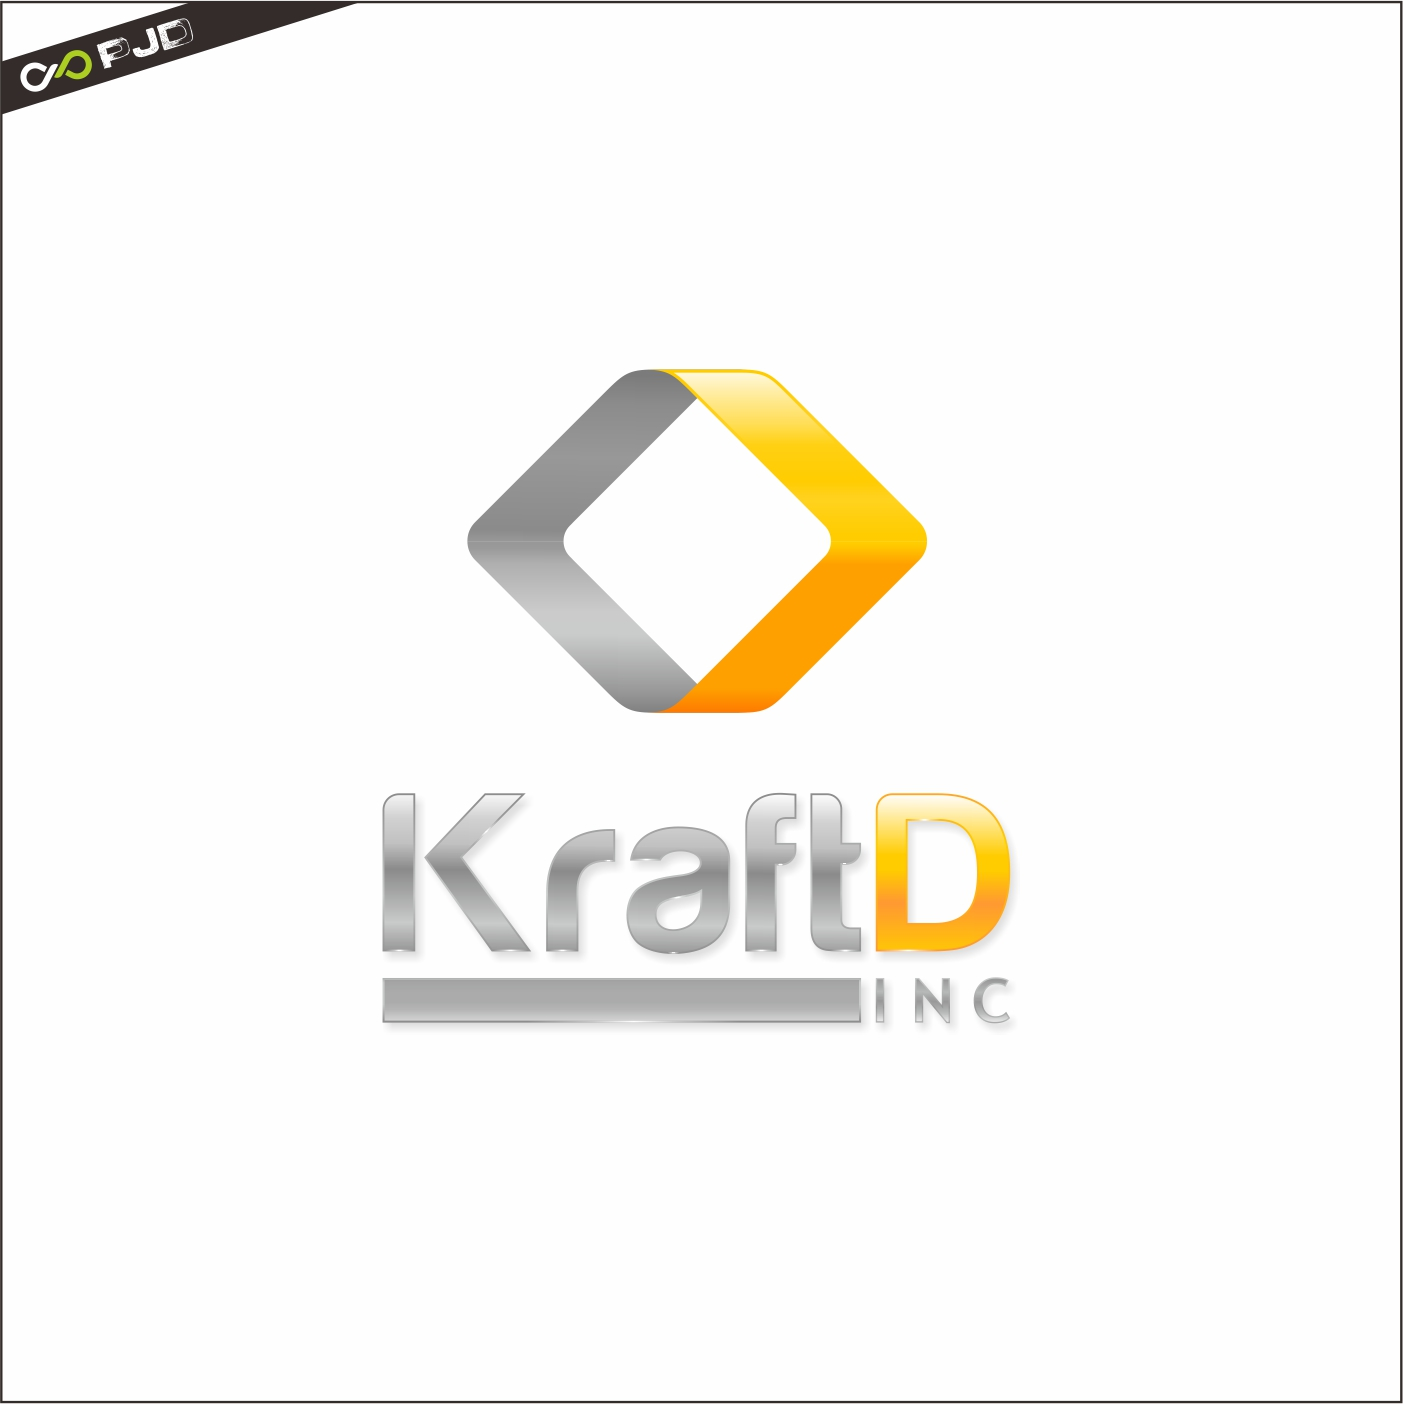 Logo Design by PJD - Entry No. 480 in the Logo Design Contest Unique Logo Design Wanted for Kraft D Inc.